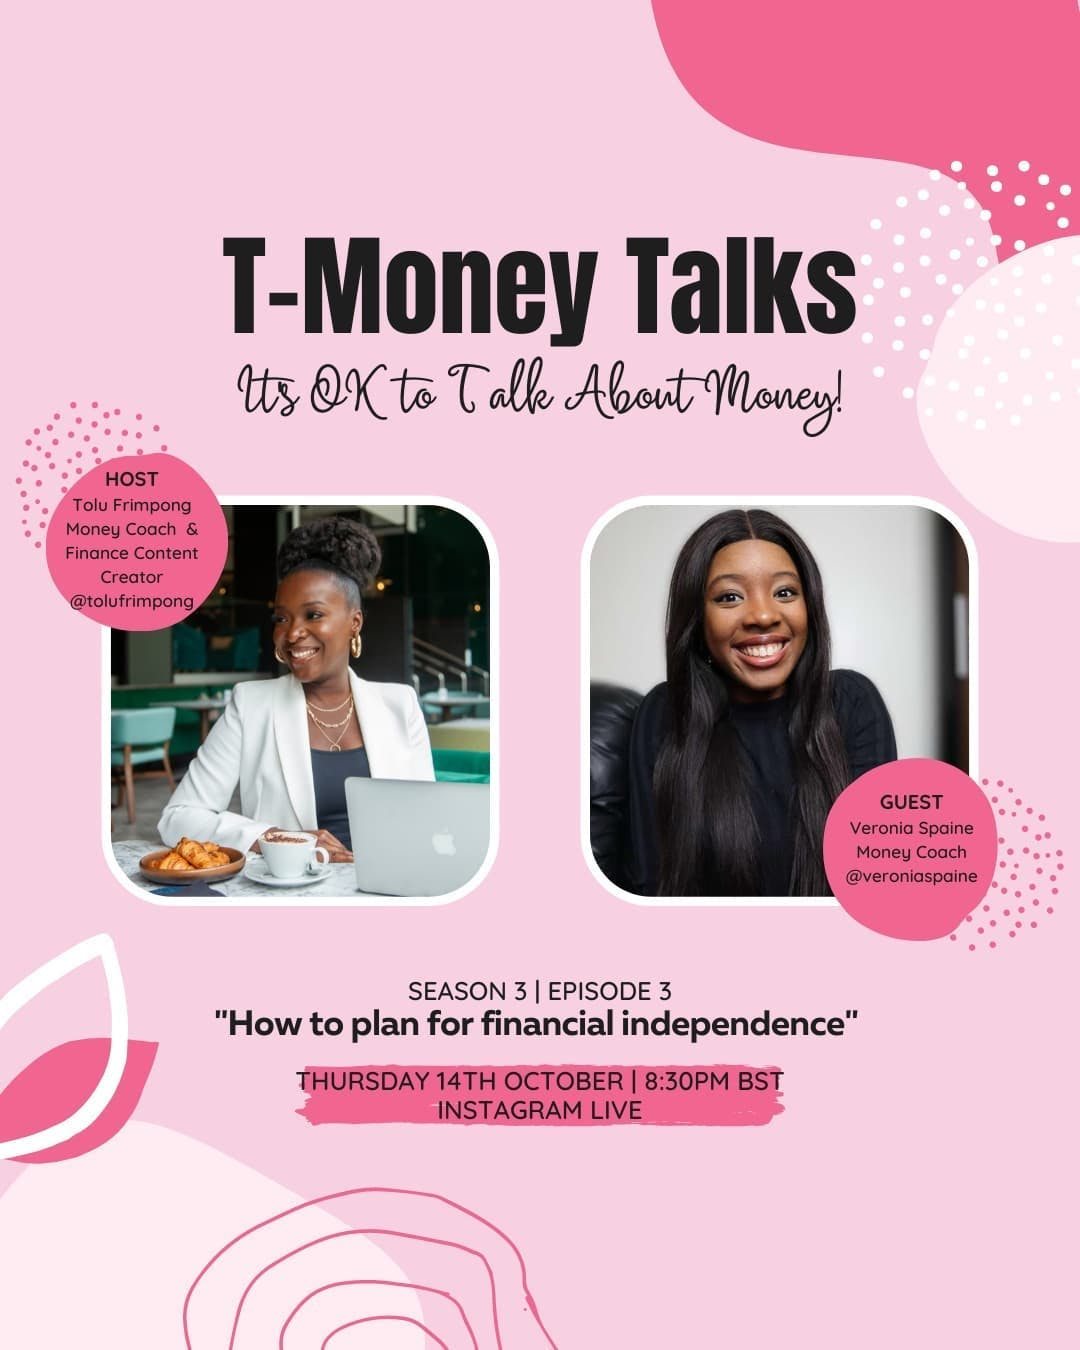 I'm excited to announce that tonight I'll be joined by Money Coach and fellow finance YouTuber Veronia Spaine to discuss how to plan for financial independence.  Veronia is a money coach who works with working millennial women to create their money plan to start working towards financial independence.   Her aim is to encourage women to spend intentionally, save differently and invest like a boss.  Join as at the slightly later time of 8:30pm.turn your reminder on via stories so you don't miss it! . . .#tmoneytalks #instagramlive  #ukdebtfreecommunity #debtfreeuk #journeytofinancialIndependence  #FinancialIndependence #personalfinanceuk #frugallivinguk #journeytofinancialfreedom